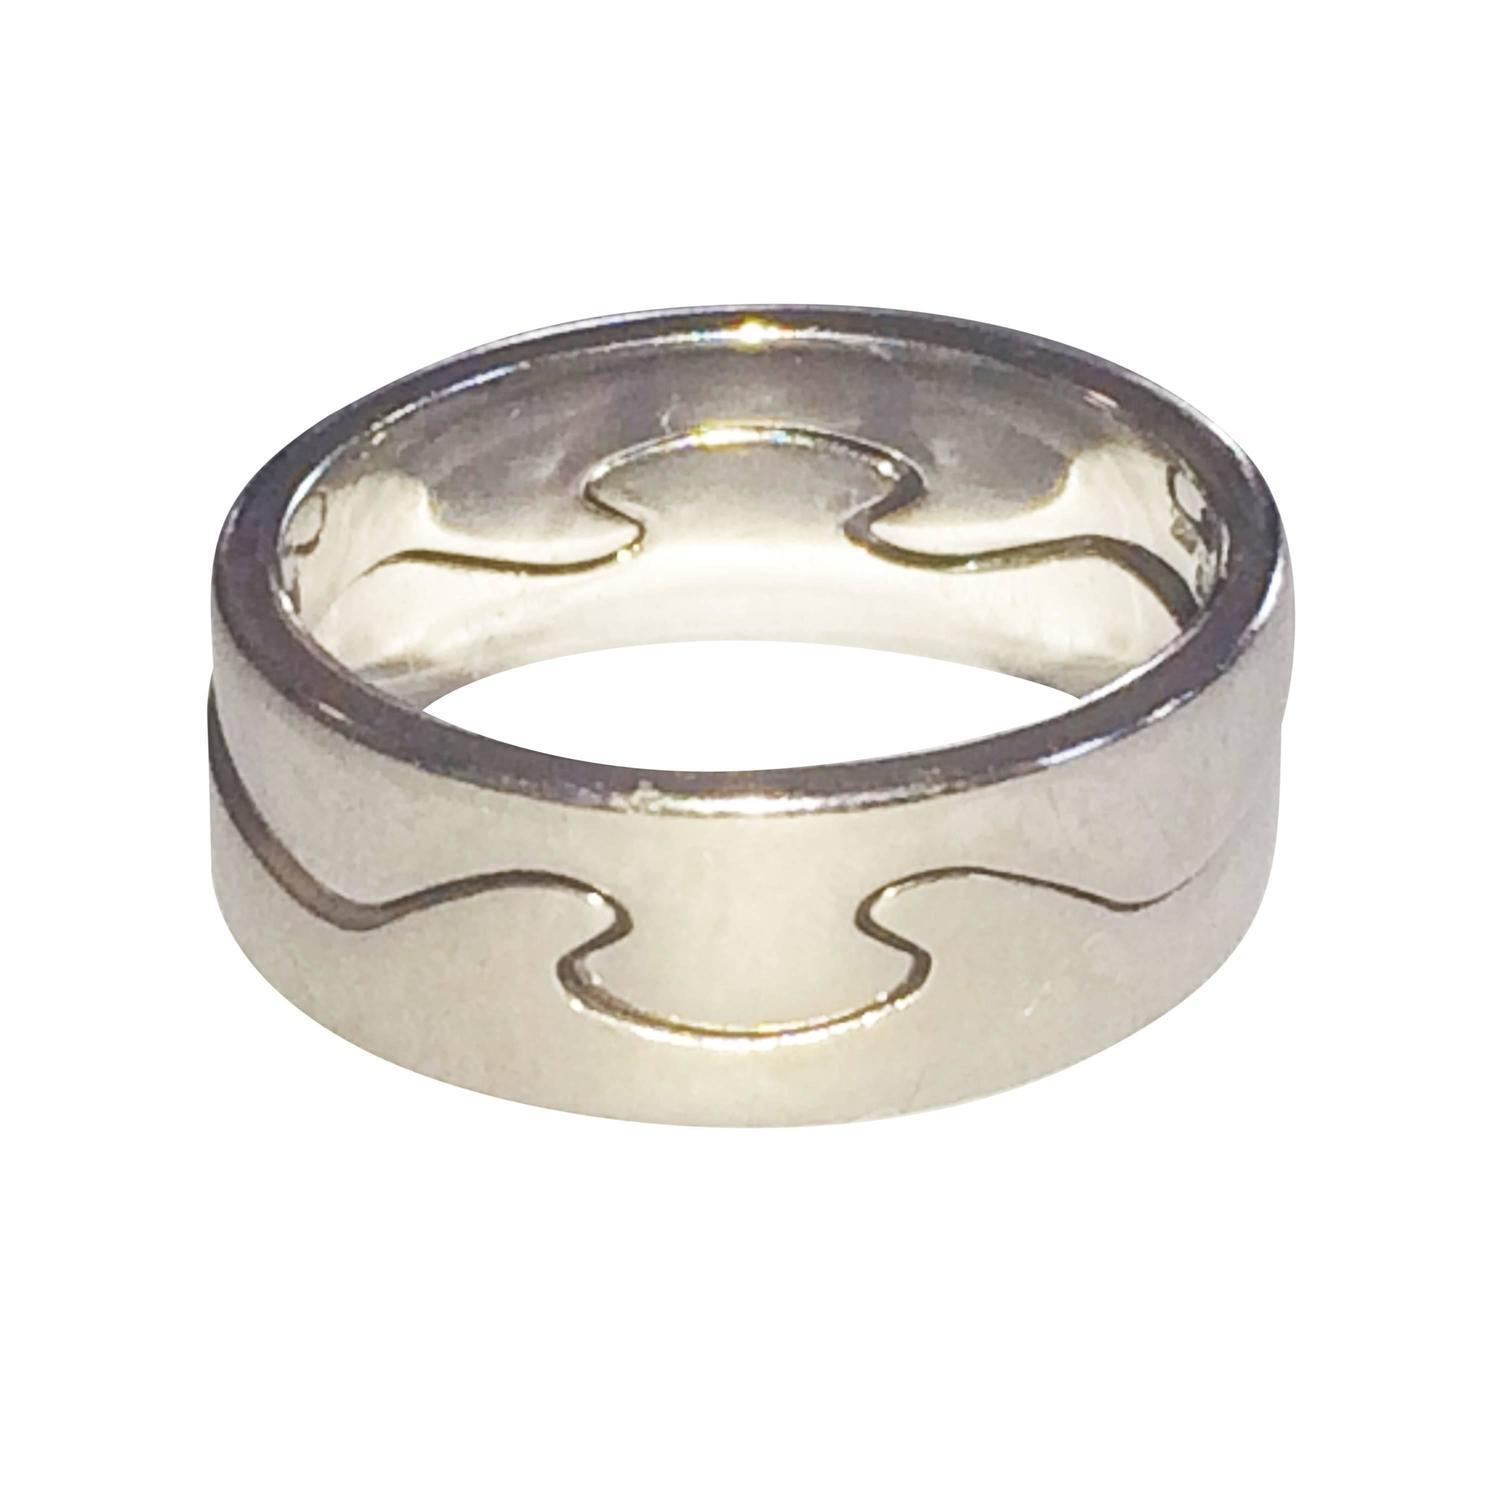 Georg jensen white gold two part fusion ring at 1stdibs for Georg jensen wedding rings